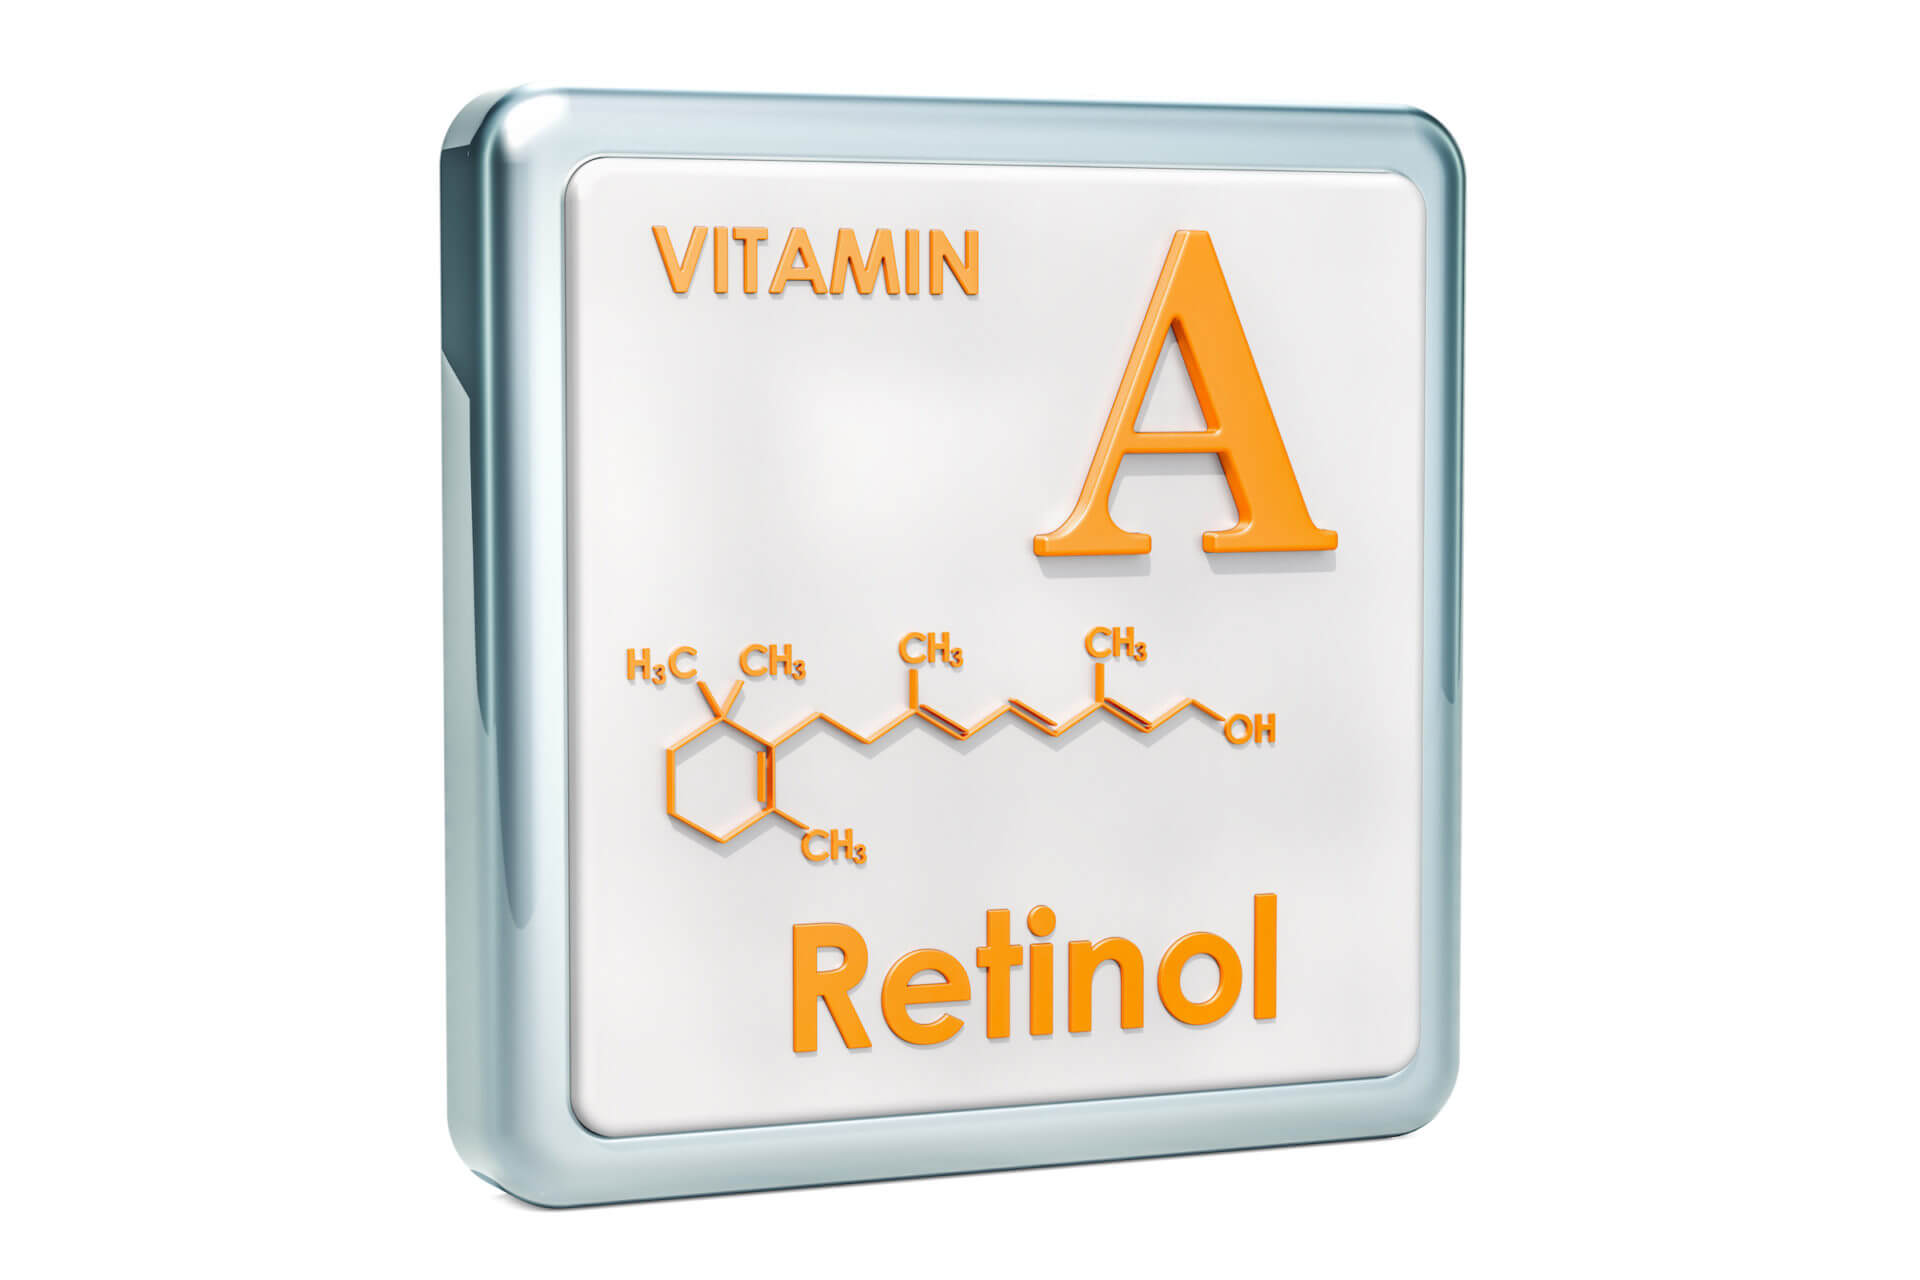 Liver is rich in retinol (the real Vitamin A)